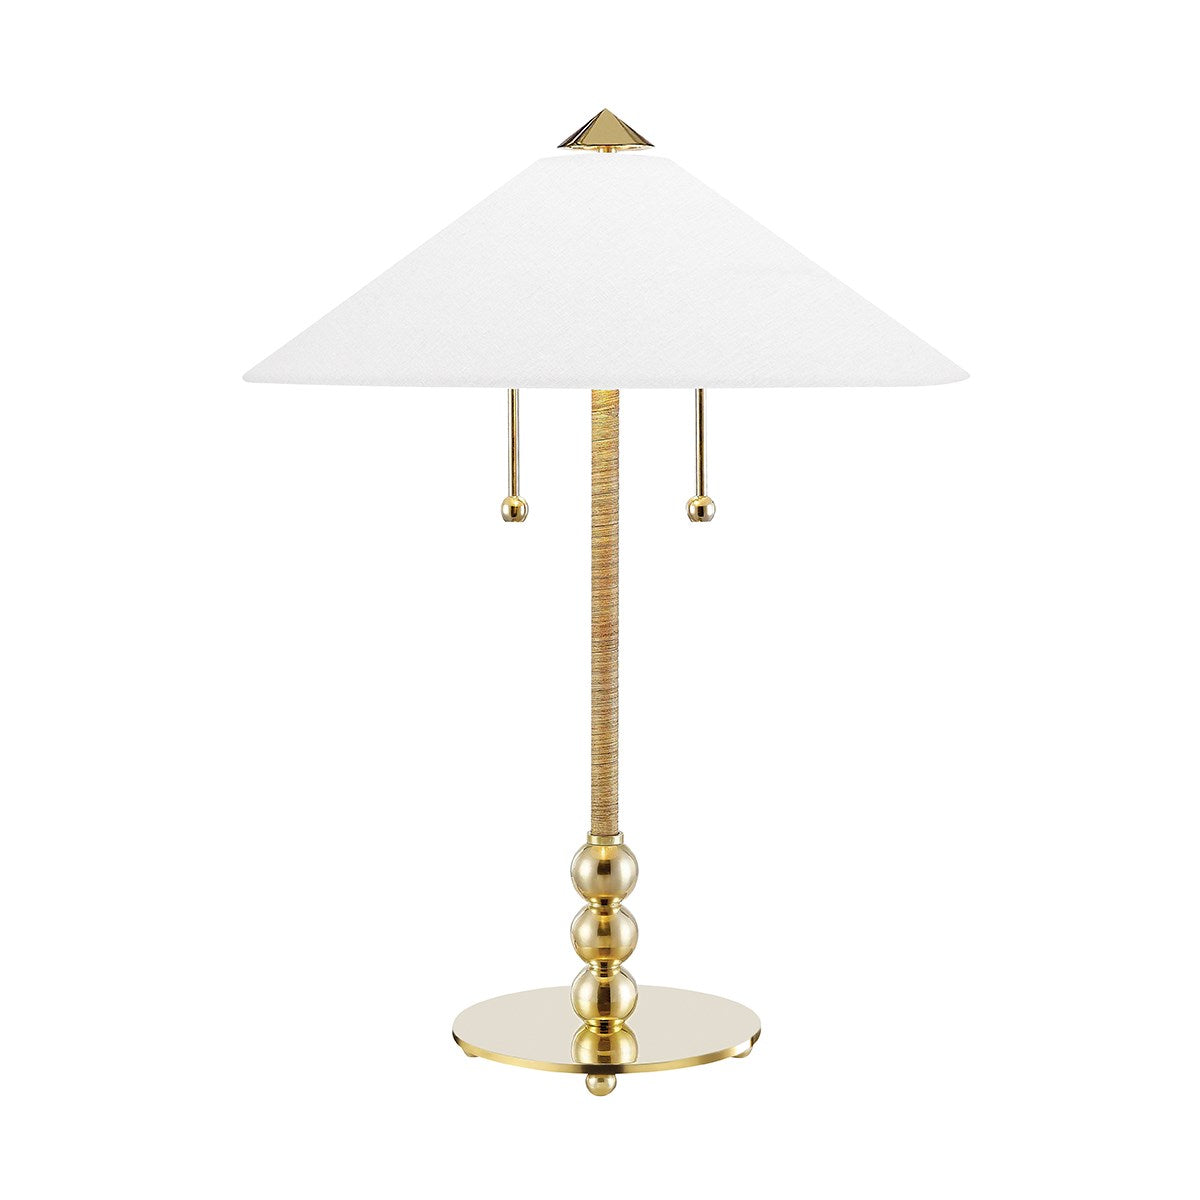 The Nouveau Table Lamp